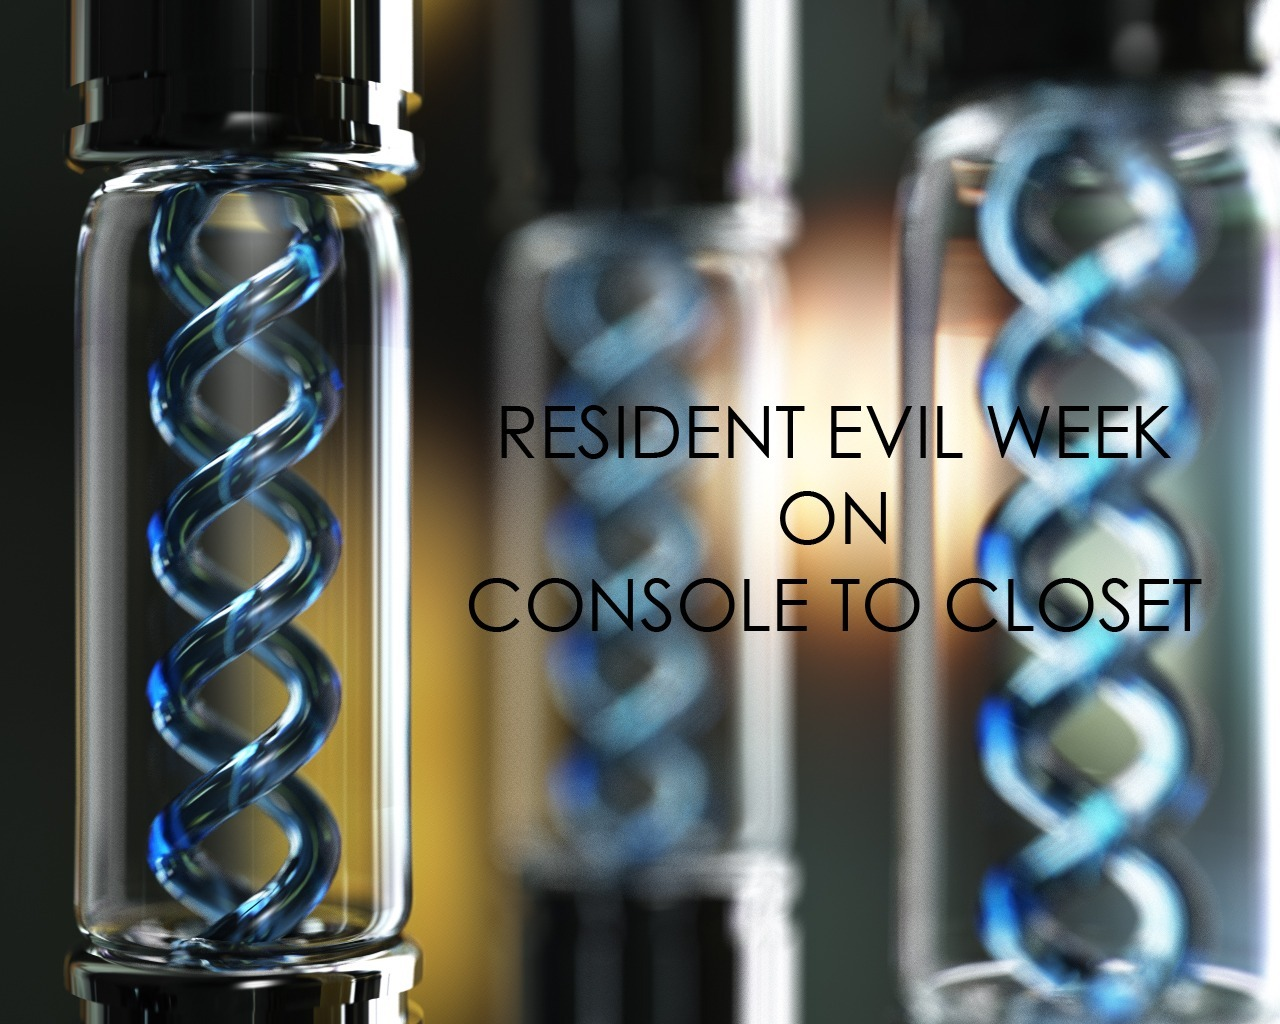 Resident Evil 6 comes out tomorrow!!! Console to Closet's Resident Evil Week will continue tomorrow with a very special RE inspired outfit. Who do you think it'll be? Stay tuned to find out!